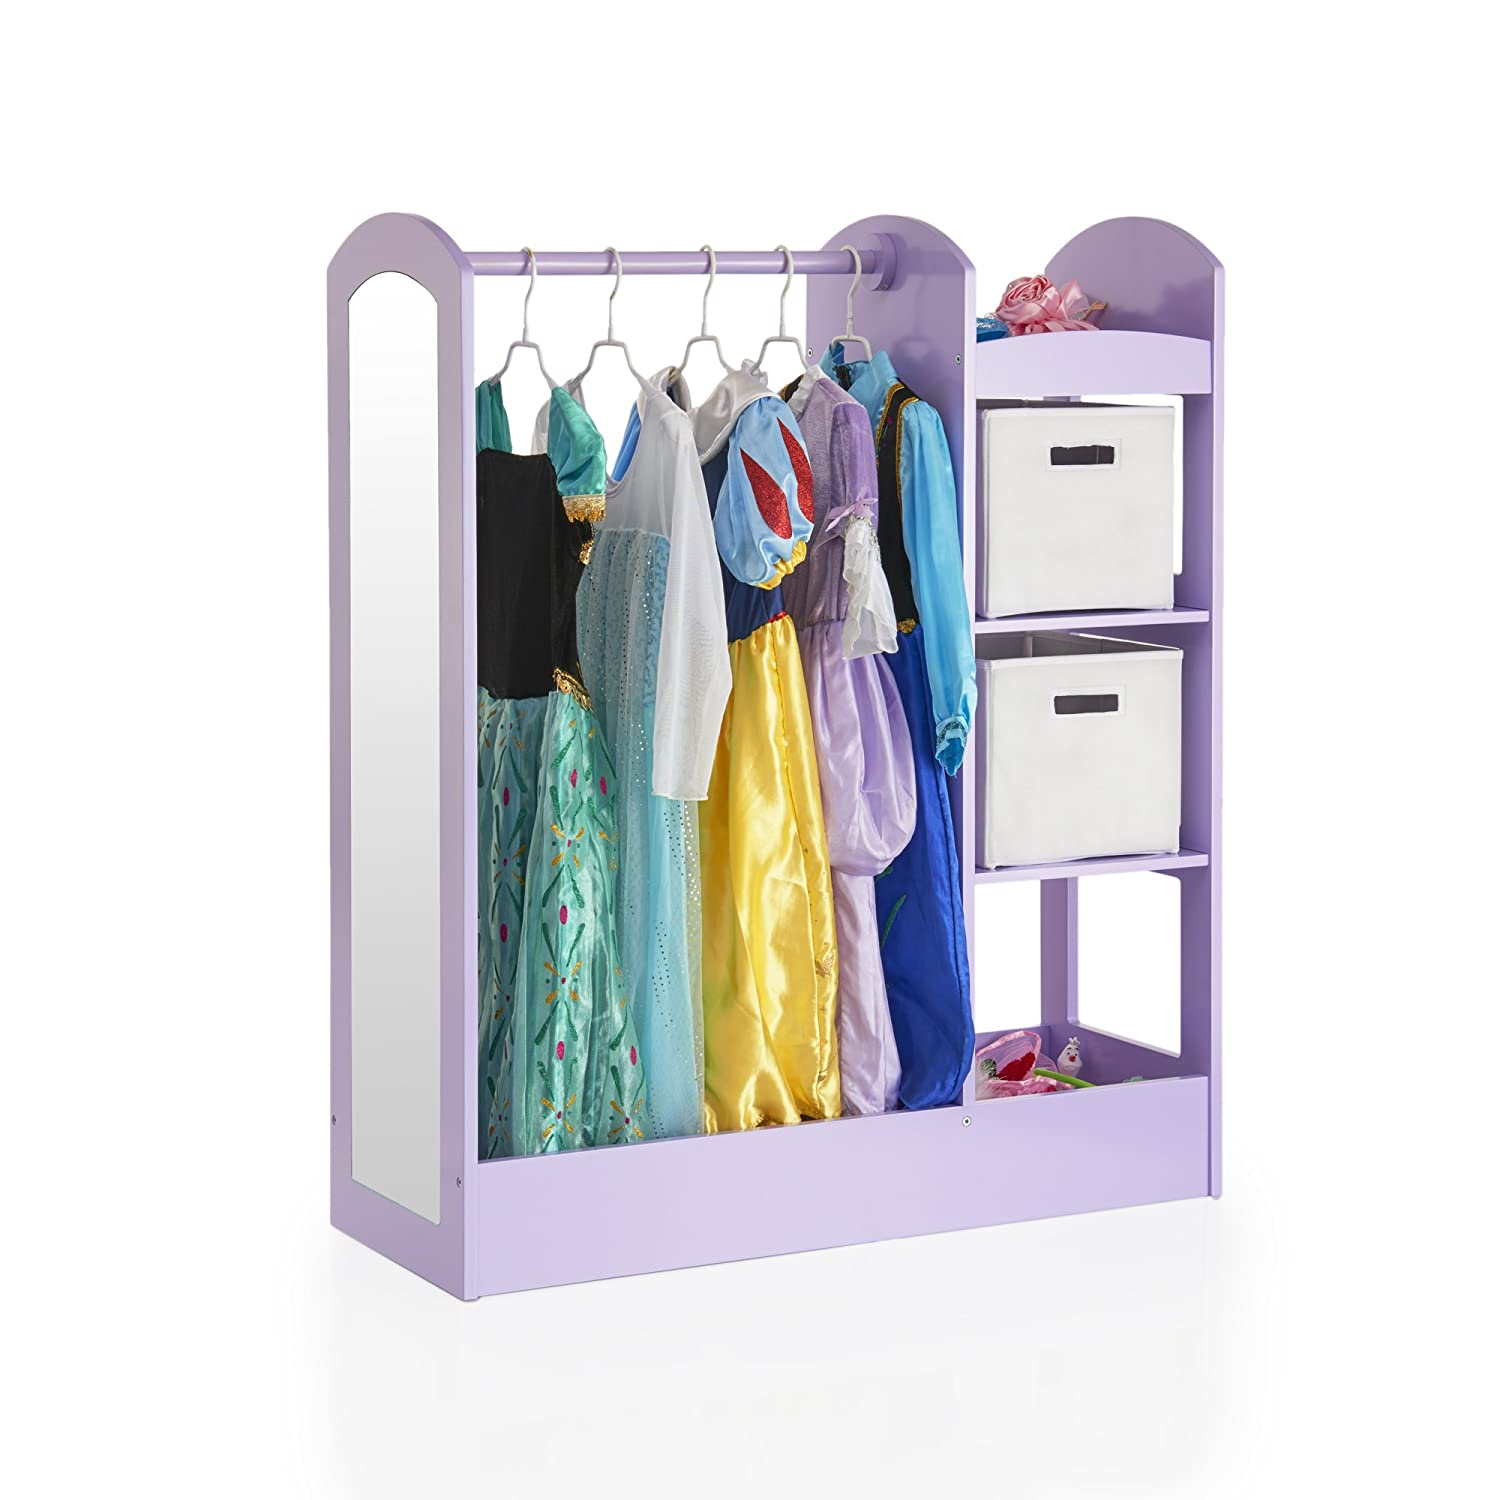 Superieur Amazon.com: Guidecraft See And Store Dress Up Center U2013 Lavender: Pretend  Play Storage Closet With Mirror U0026 Shelves, Armoire For Kids With Bottom  Tray ...